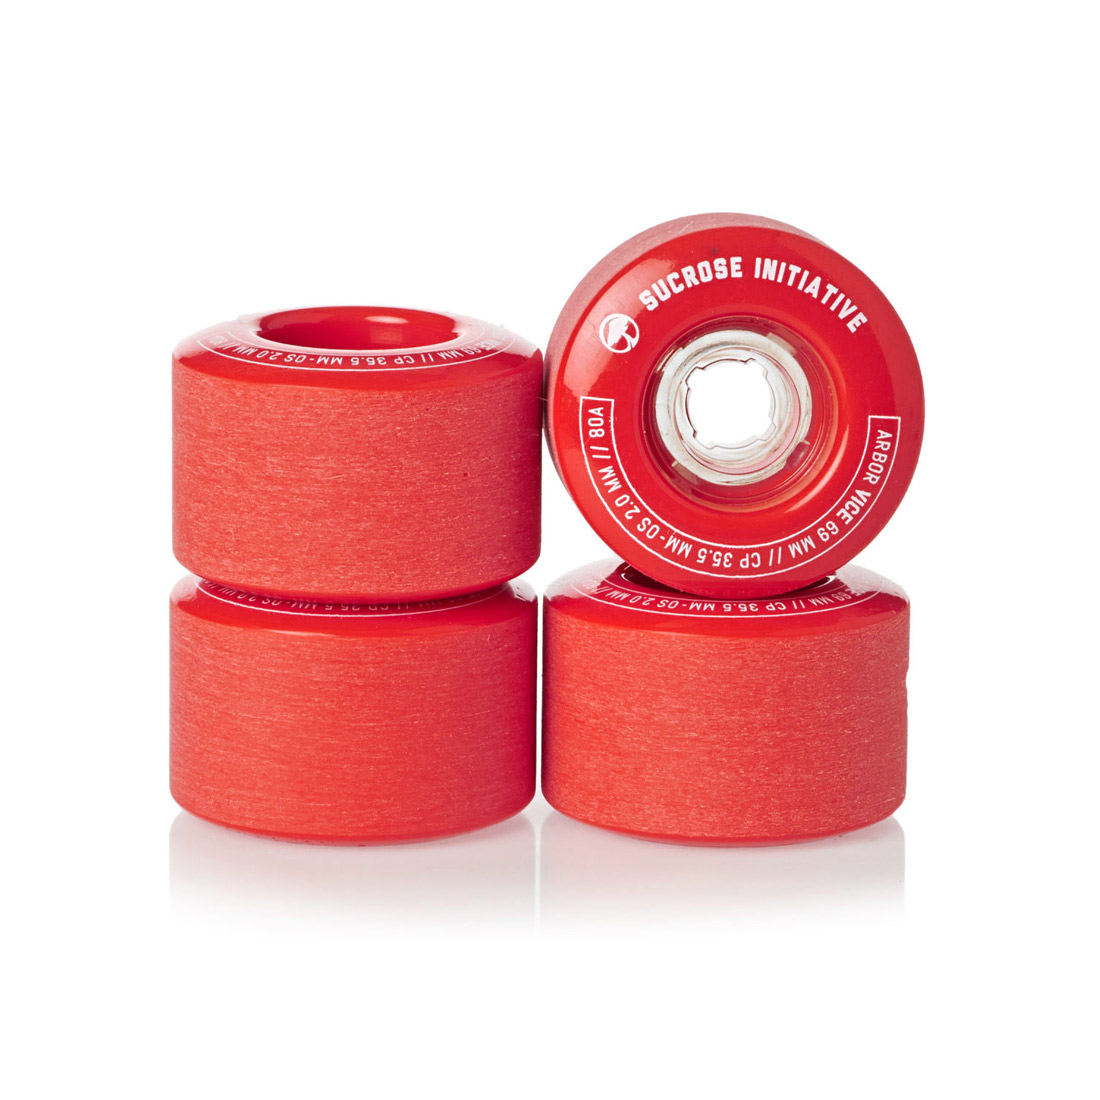 Arbor Collective Vice 80a 69mm Red